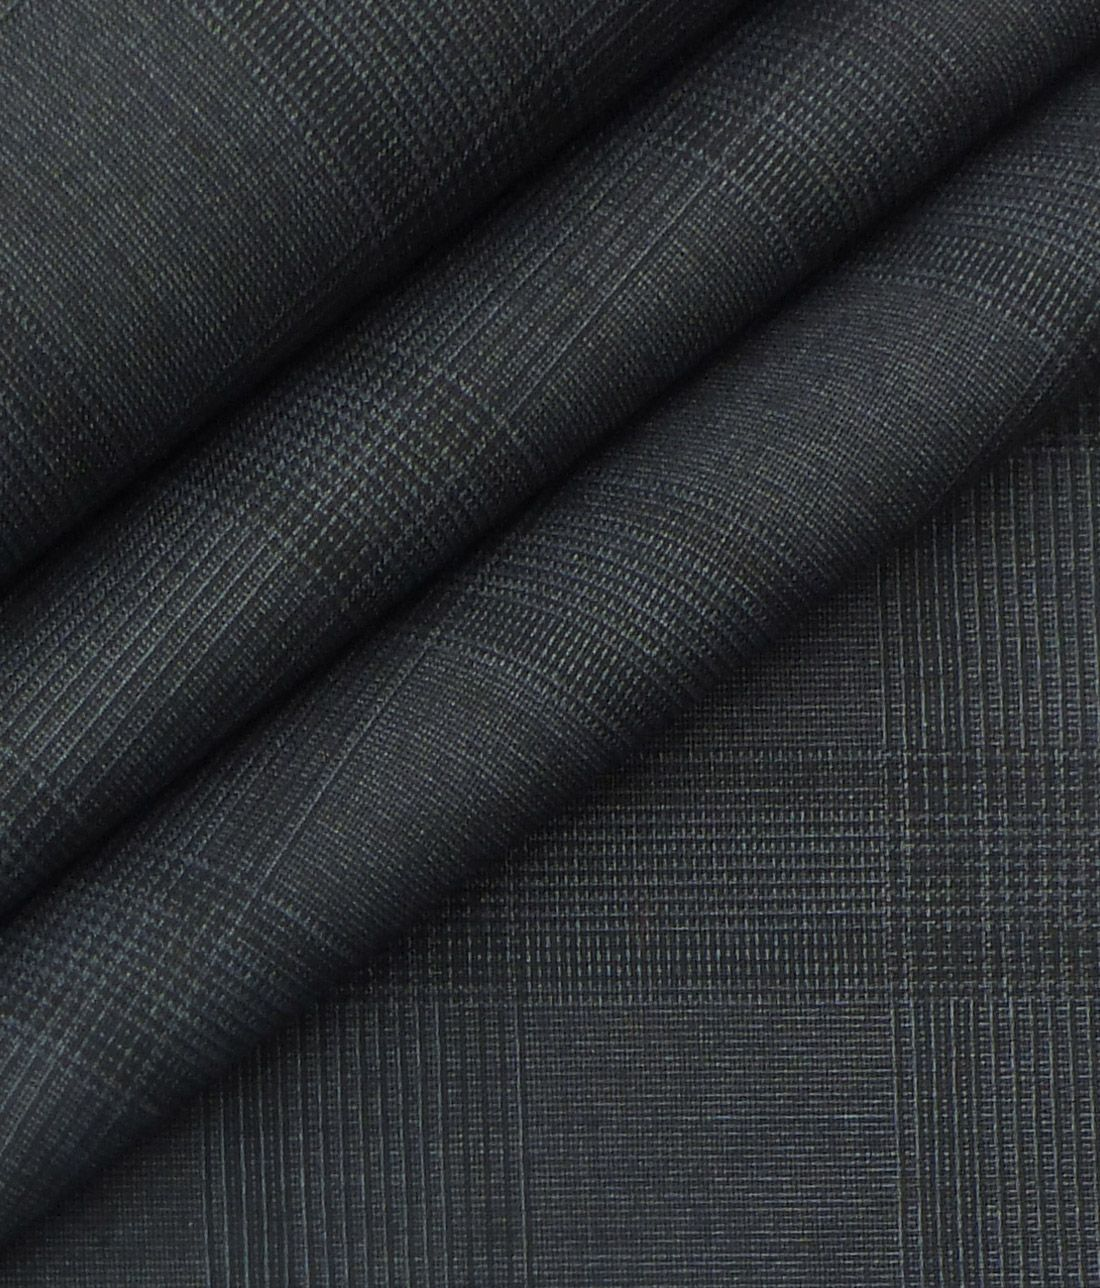 13f95ca7 Italian Channel Dark Grey Self Checks Terry Rayon Premium Three Piece Suit  Fabric (Unstitched - 3.75 Mtr)|The Libas Store